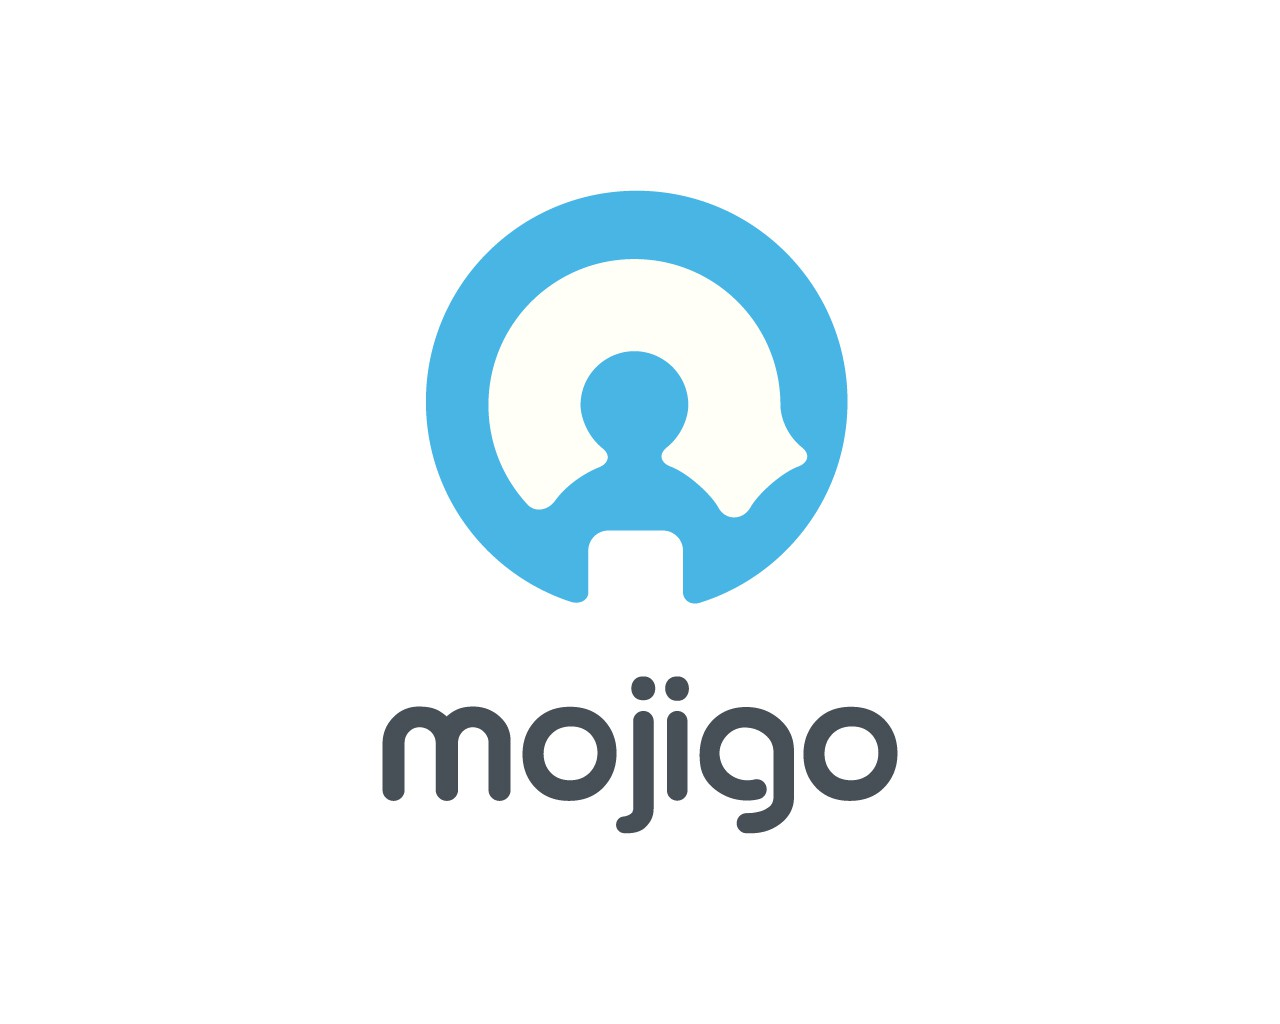 New logo wanted for mojigo